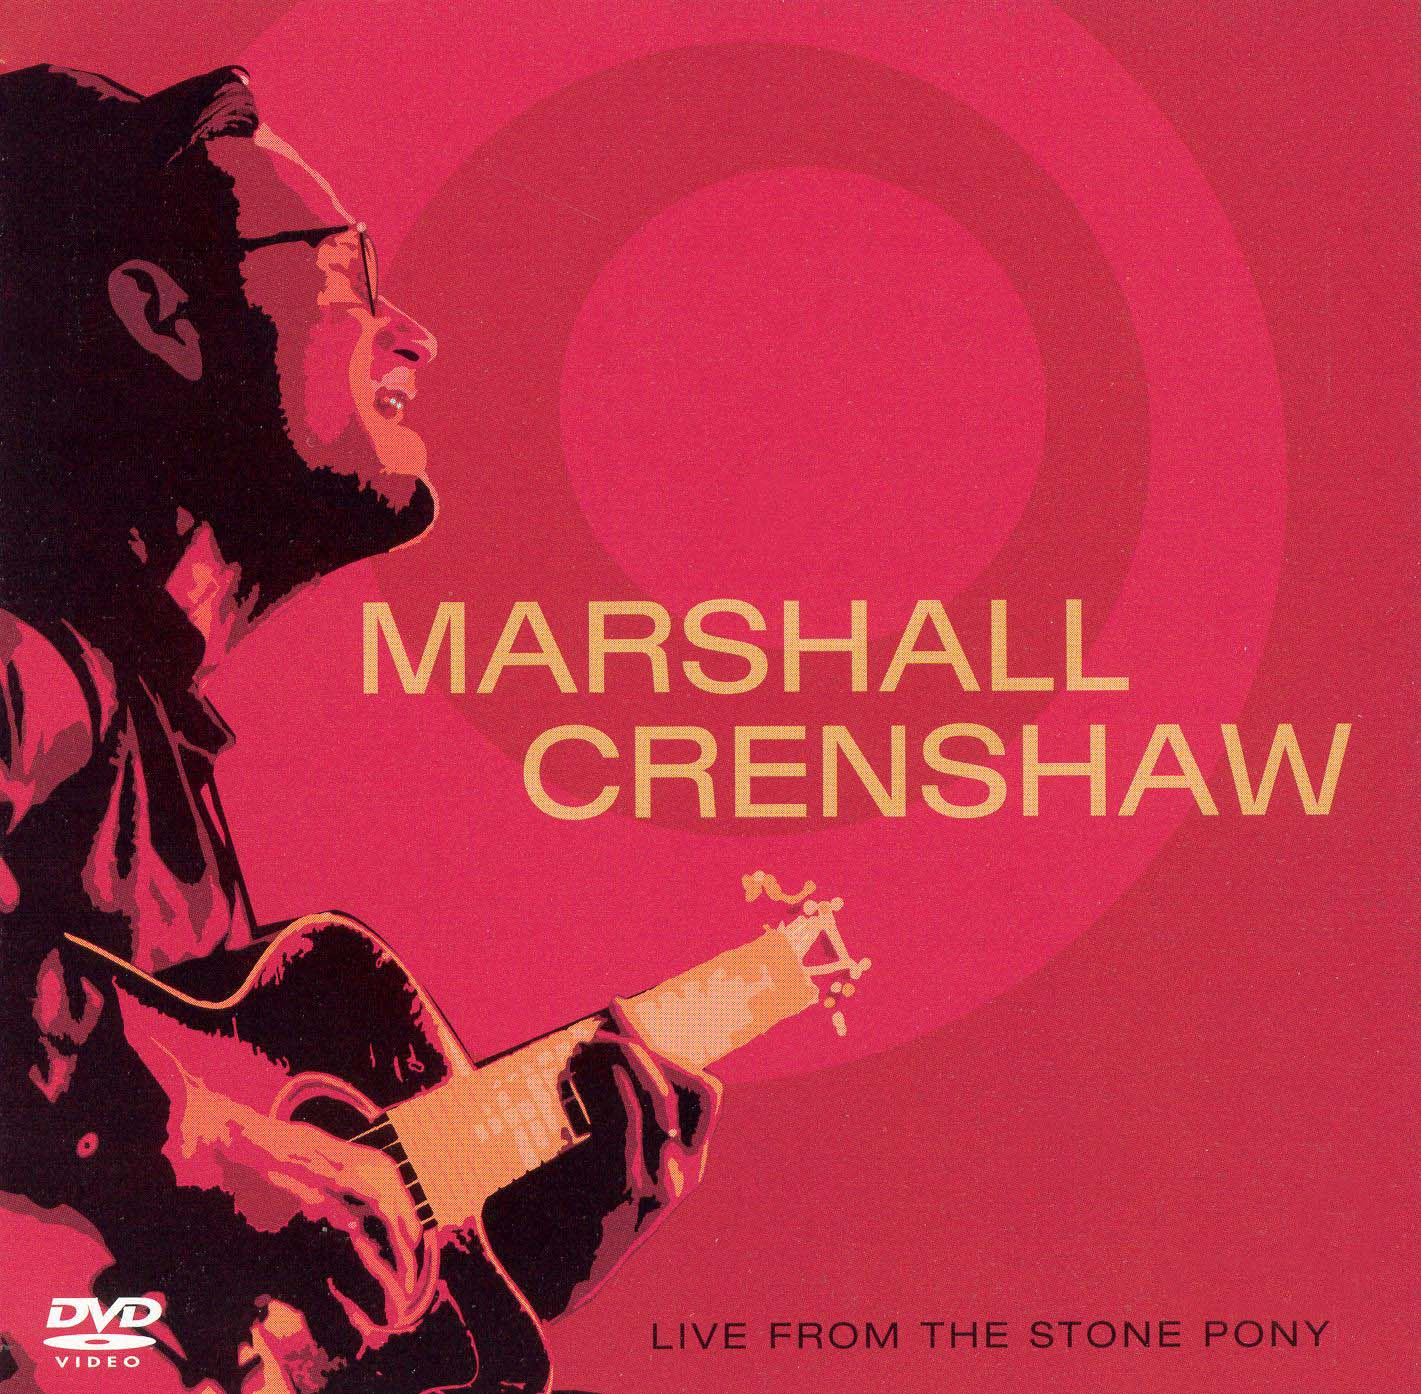 Marshall Crenshaw: Live From the Stone Pony